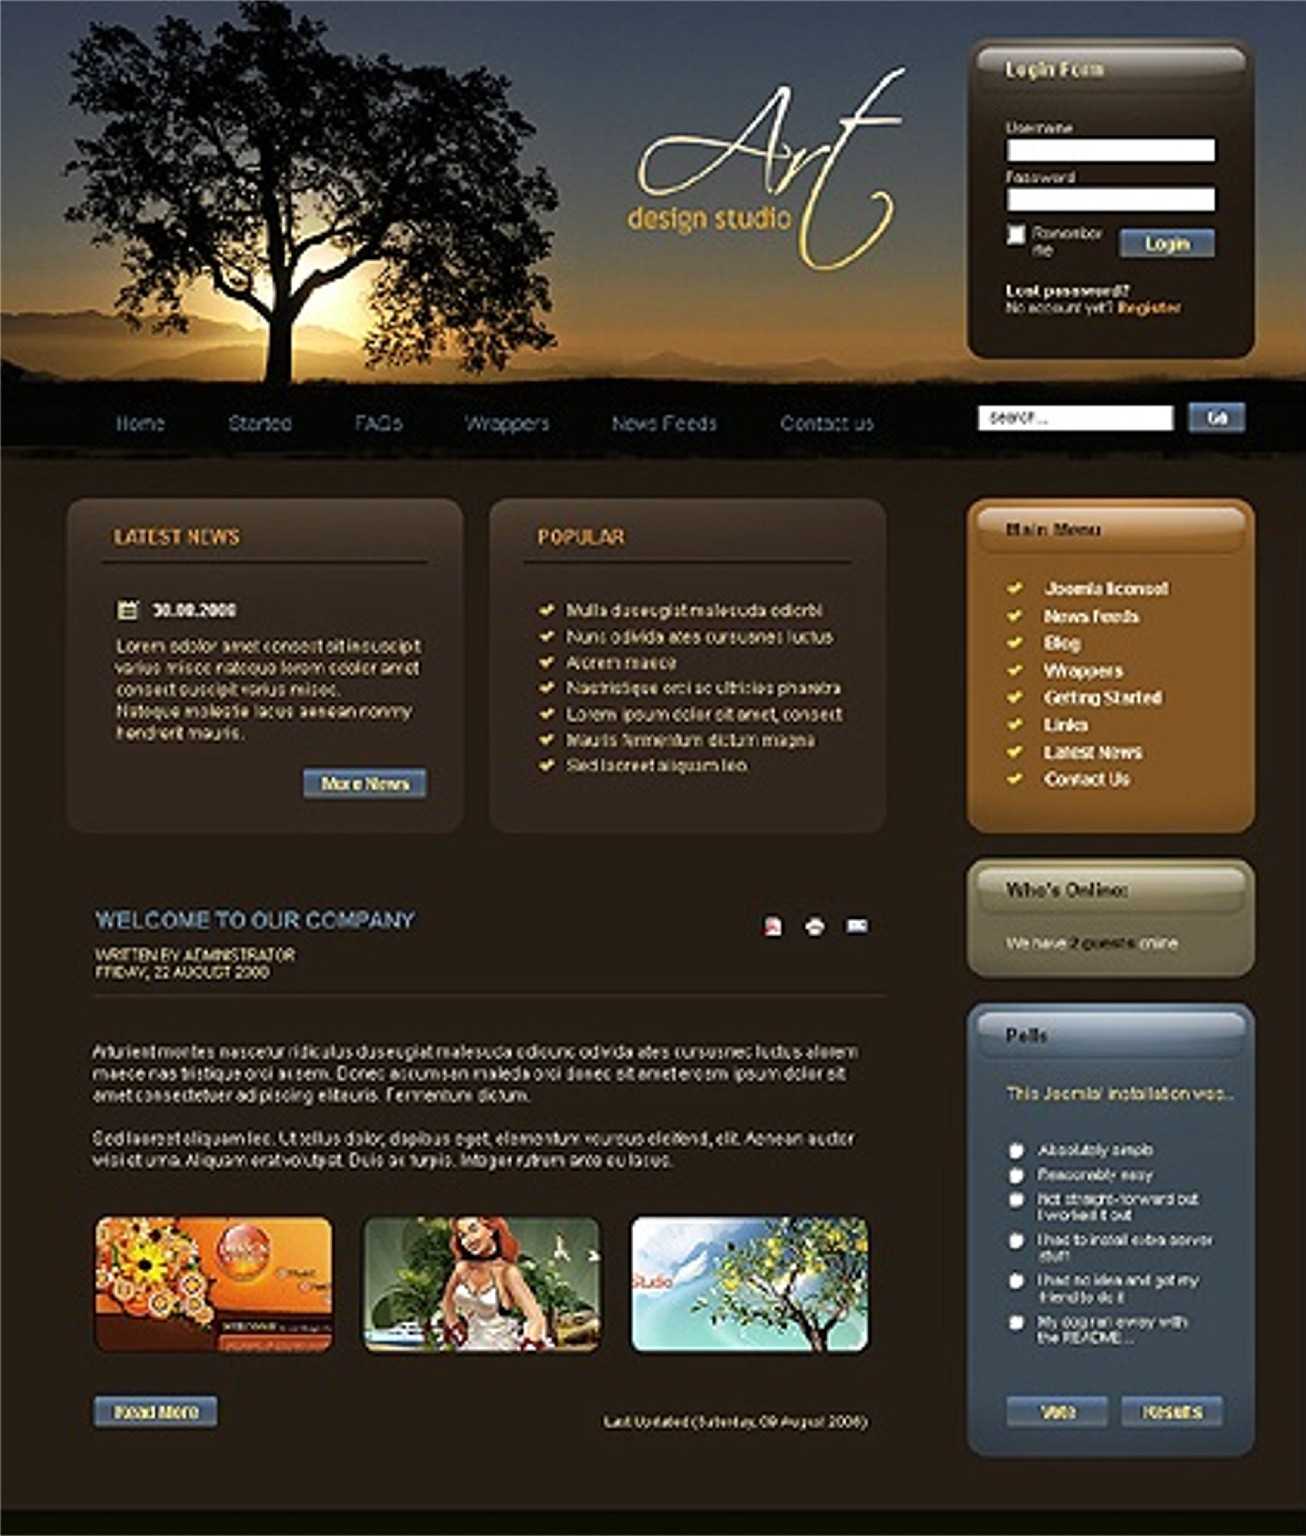 JRL-Enterprises LLC Web Templates10117